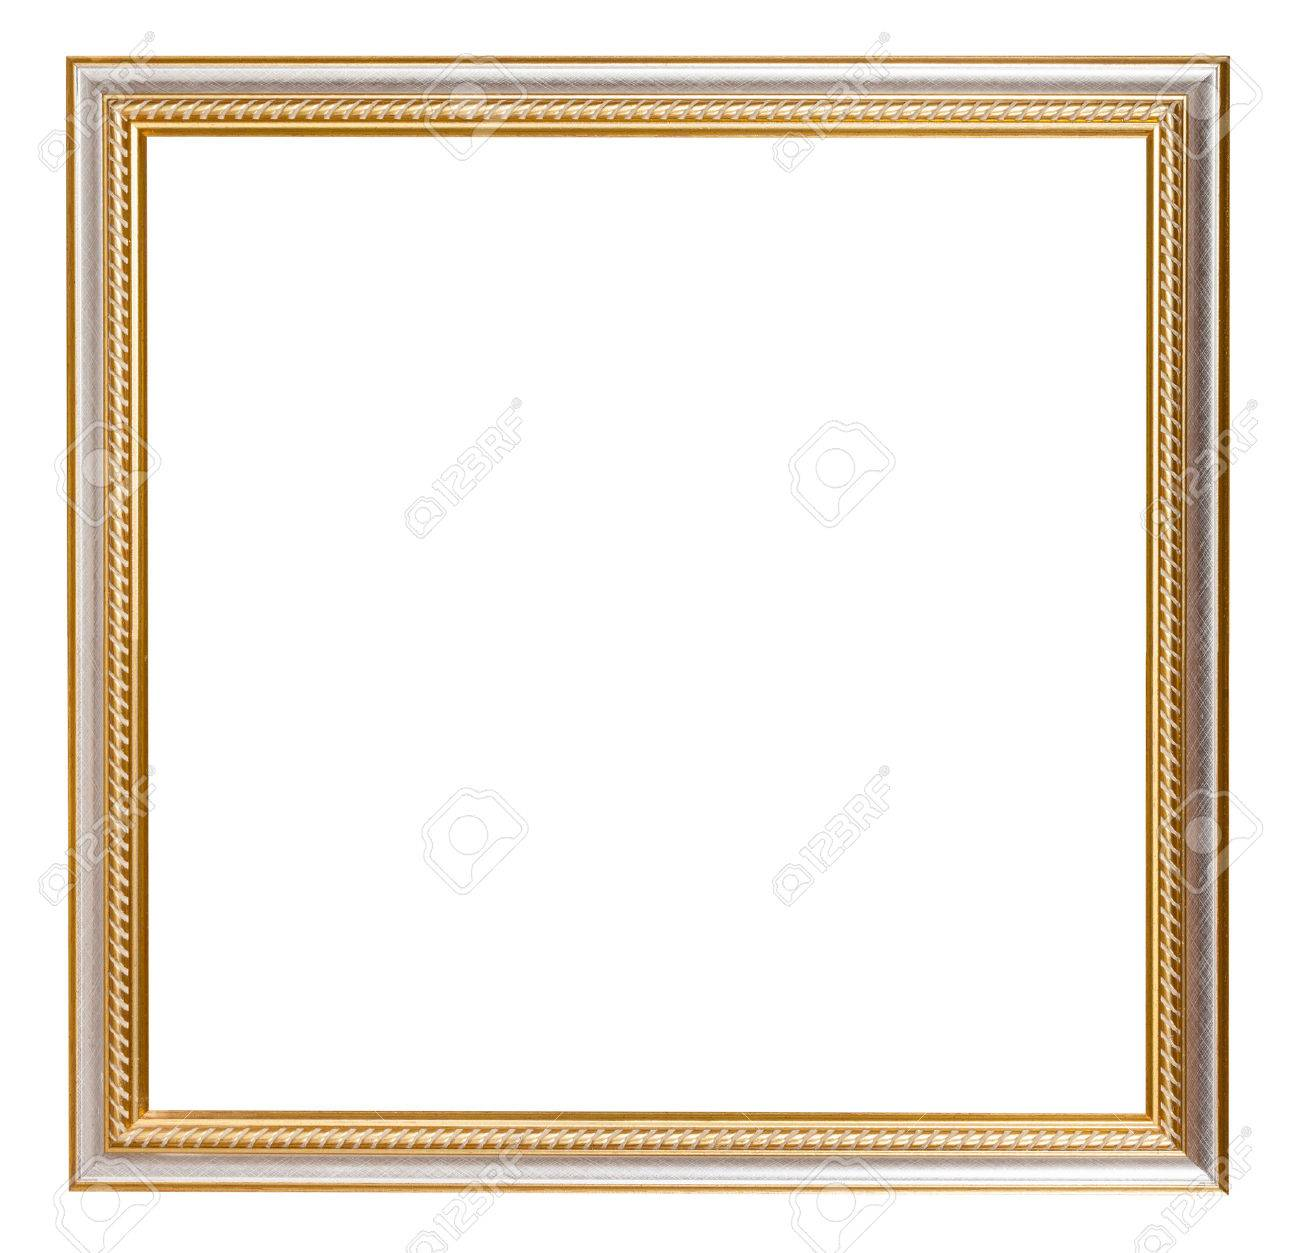 square golden carved wooden picture frame with cut out blank space isolated on white background - 43074444